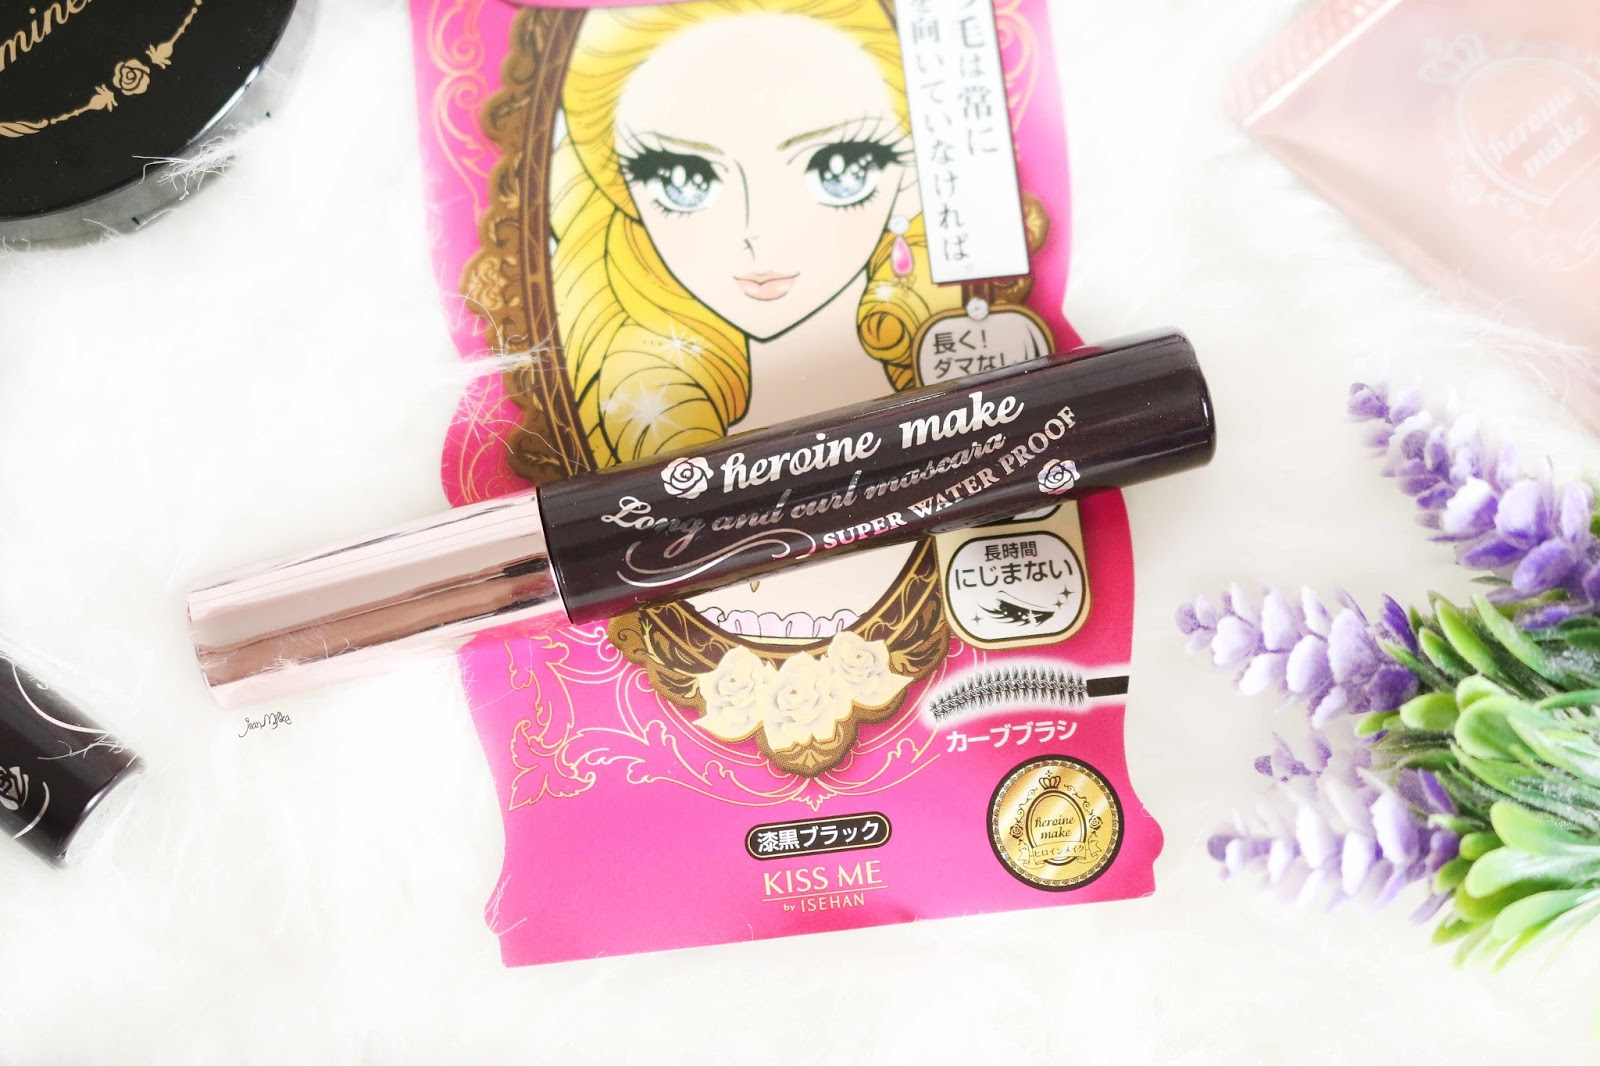 makeup, drugstore, makeup murah, review, beauty, beauty blog indonesia, makeup pemula, makeup untuk pemula, makeup murah indo, mascara, heroine make